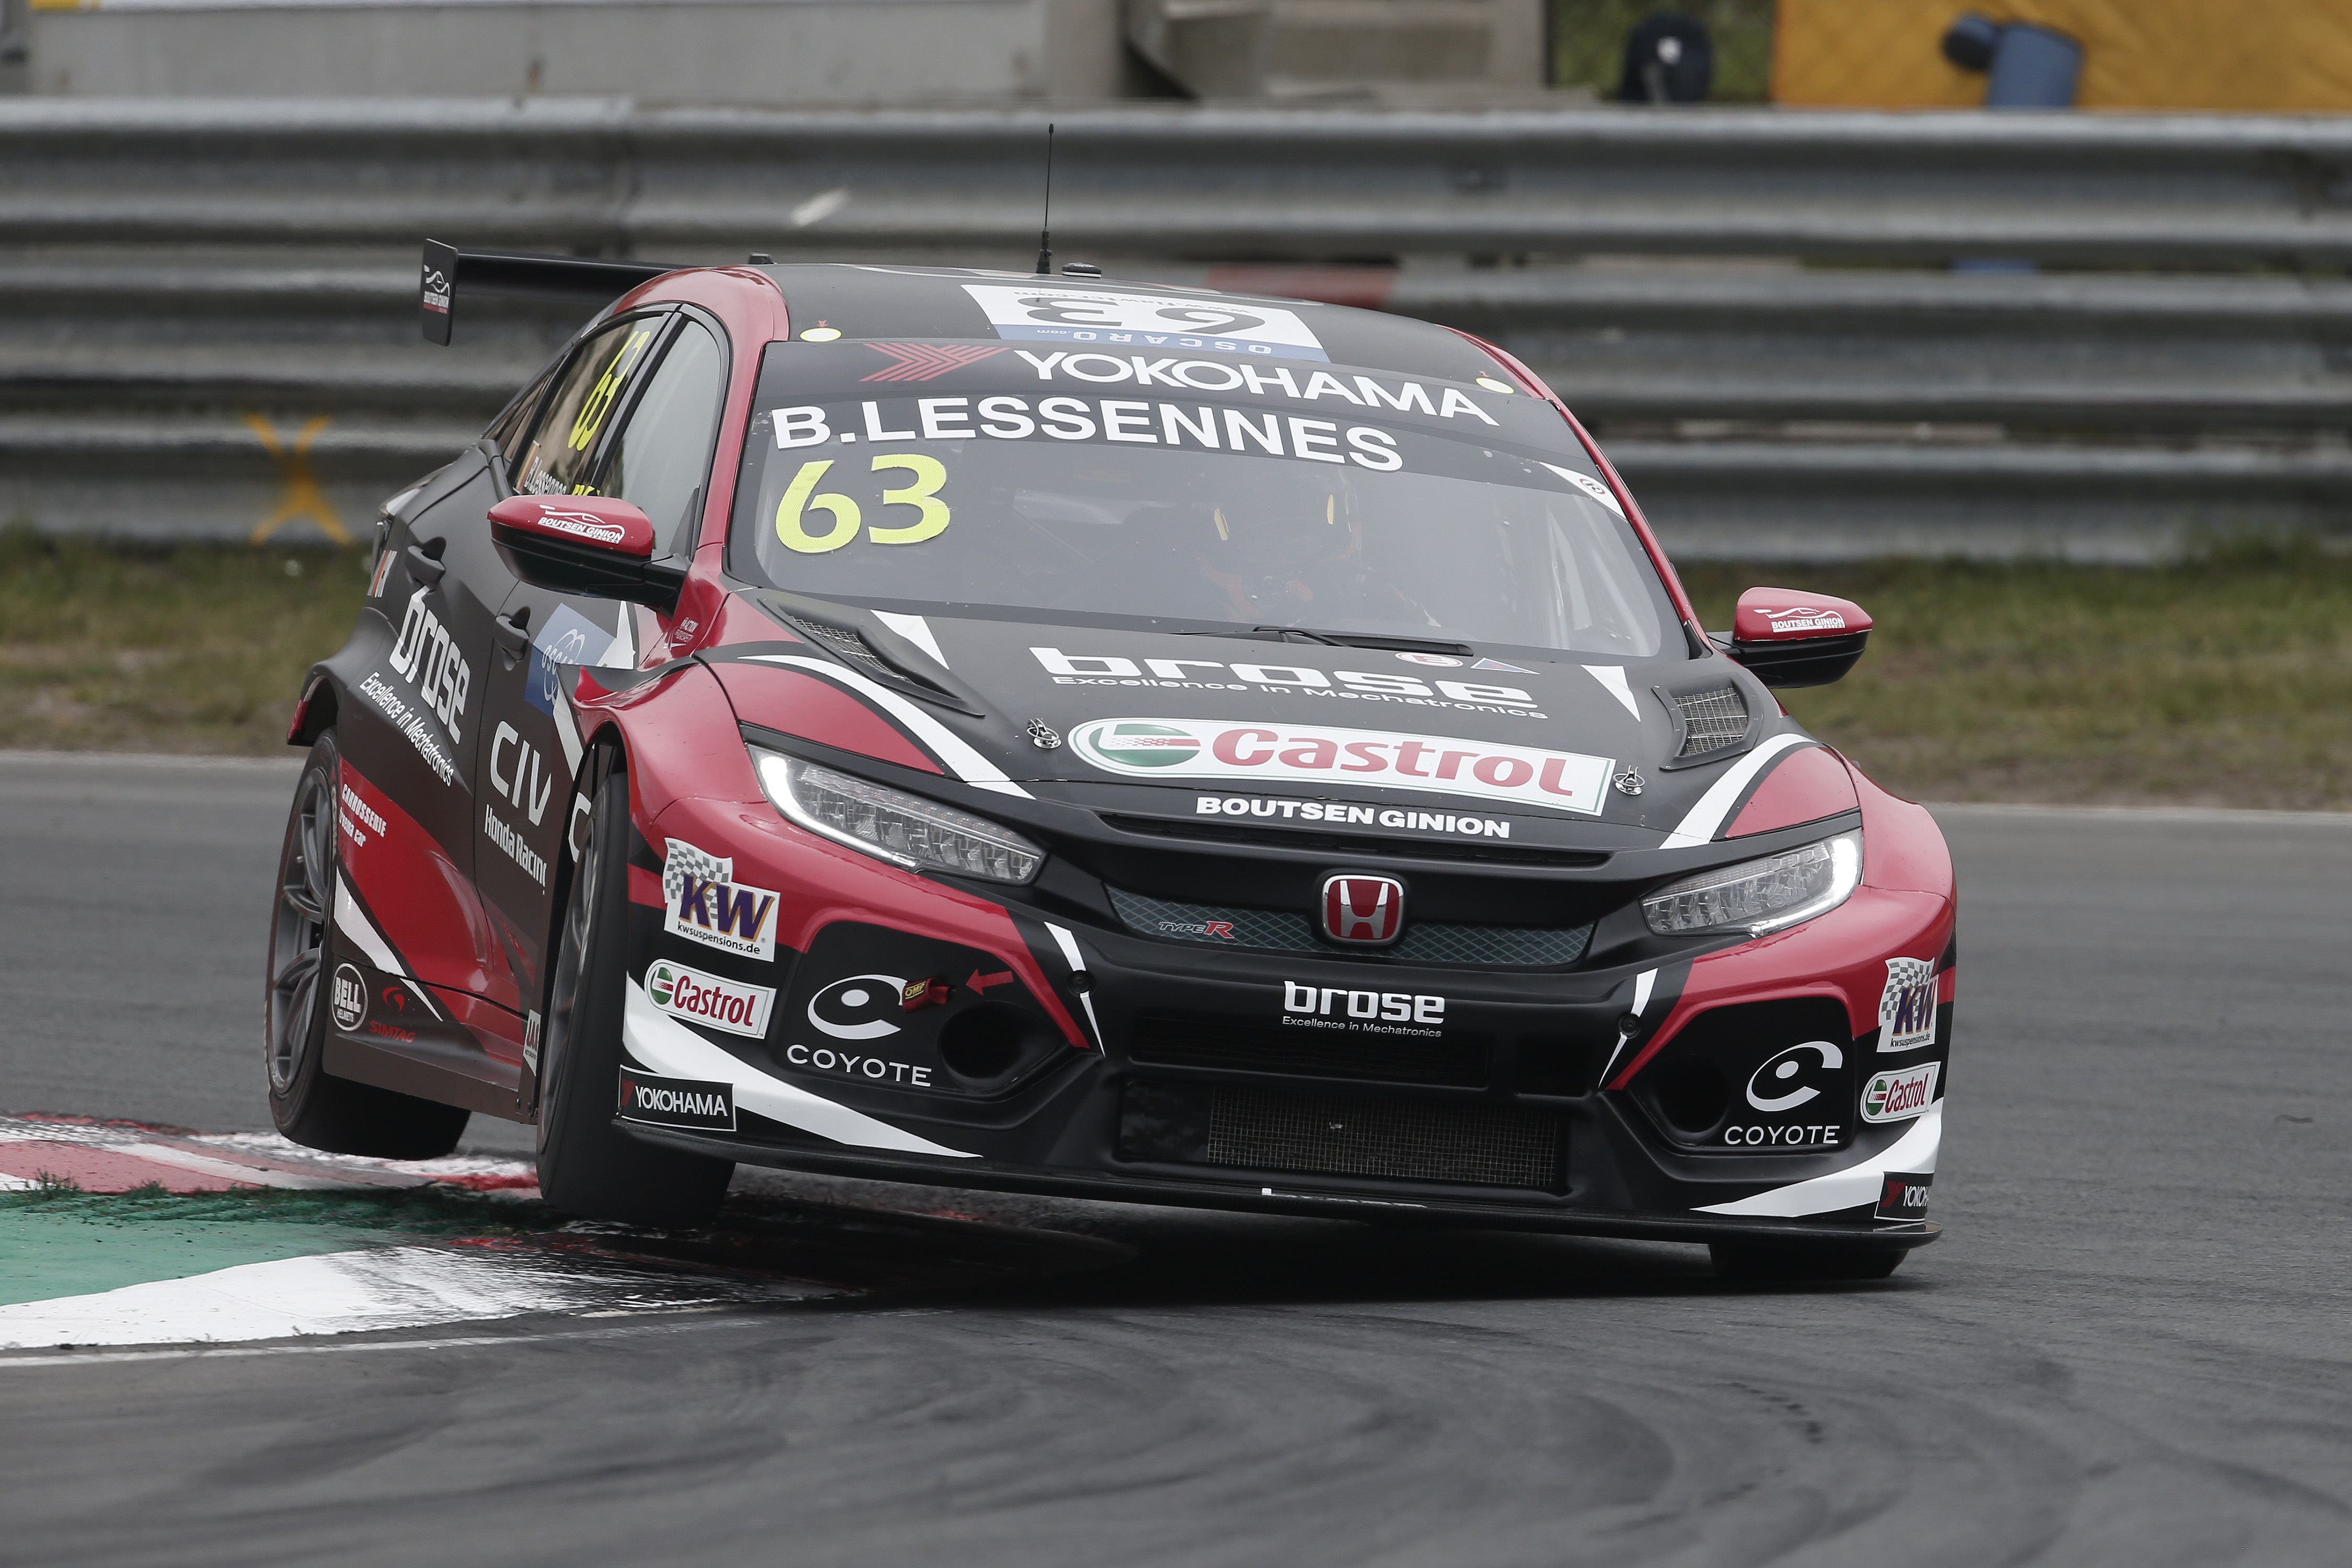 Lessennes looks to next race for WTCR reaction